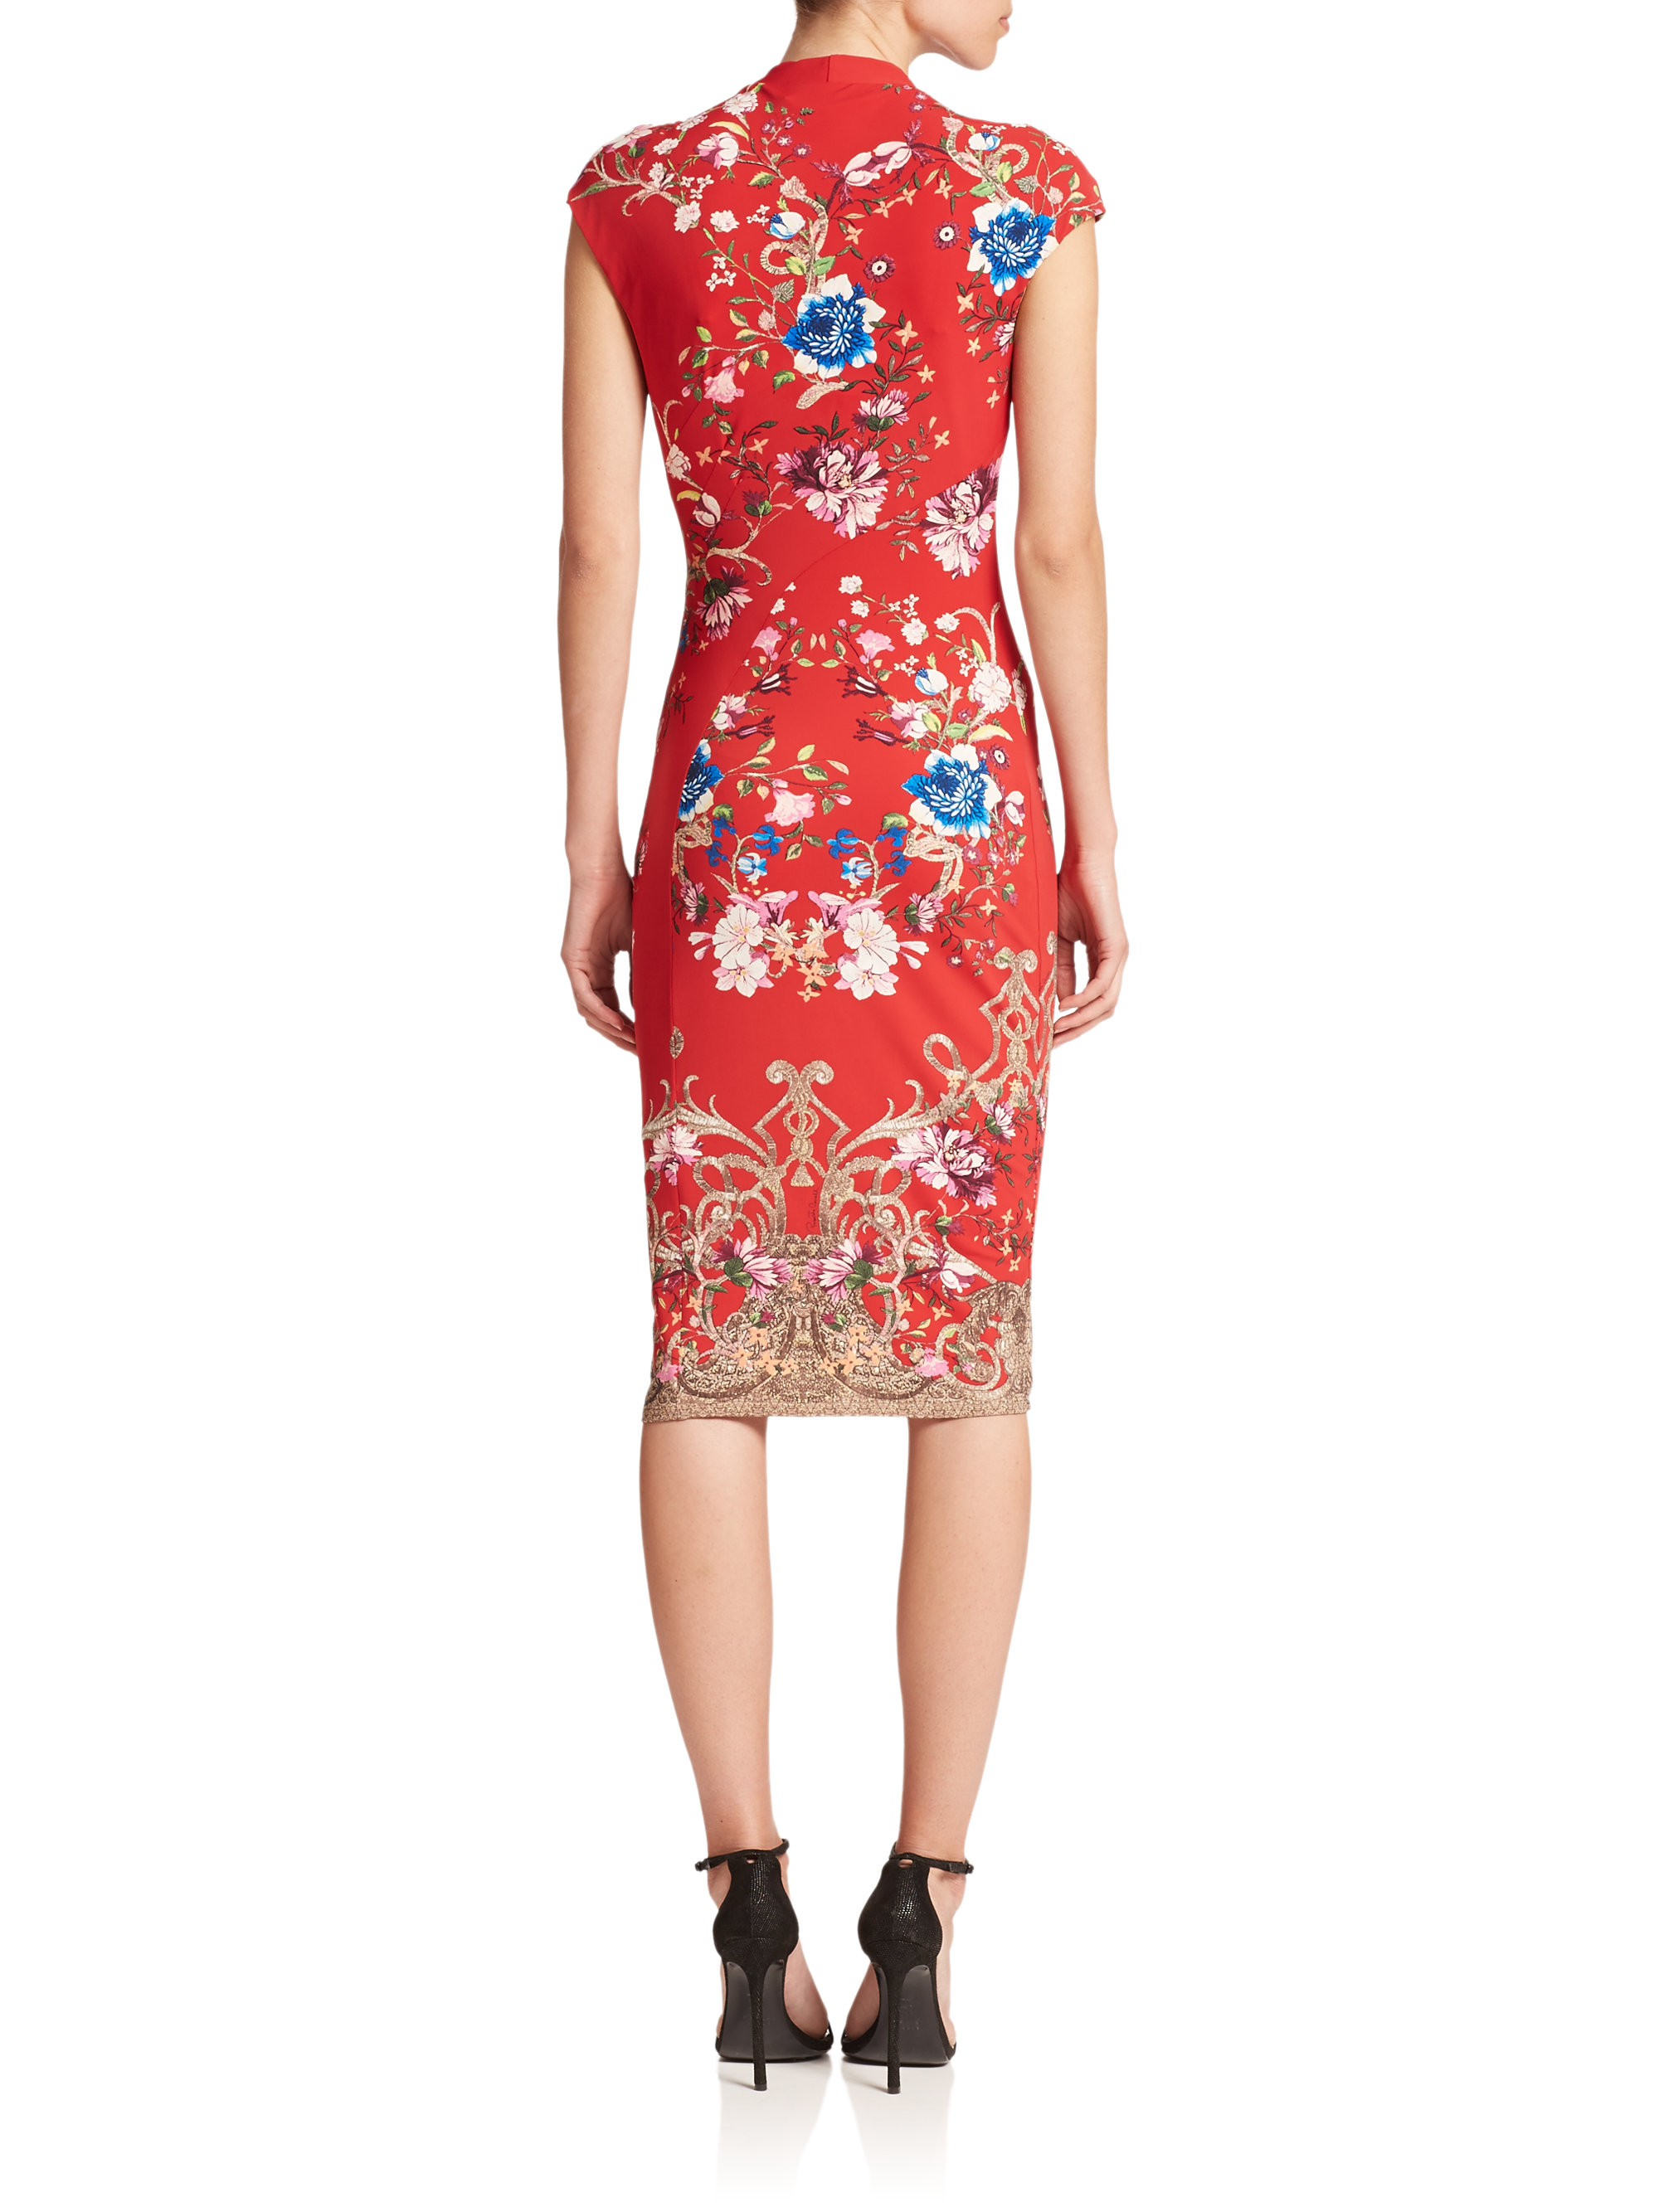 Roberto cavalli Diagonal Floral-print Cap-sleeve Dress in Red | Lyst